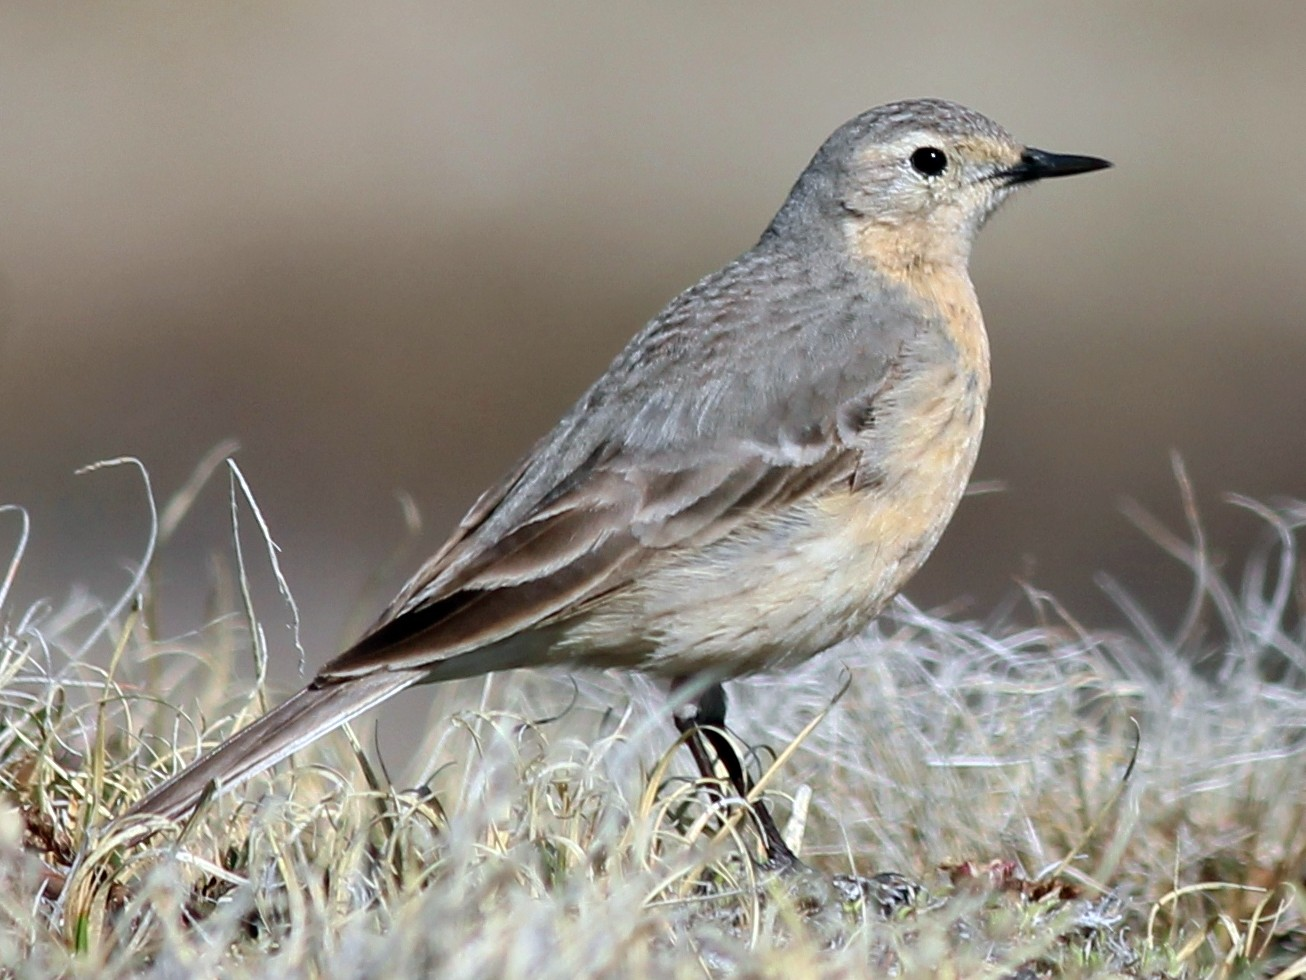 American Pipit - Shawn Billerman